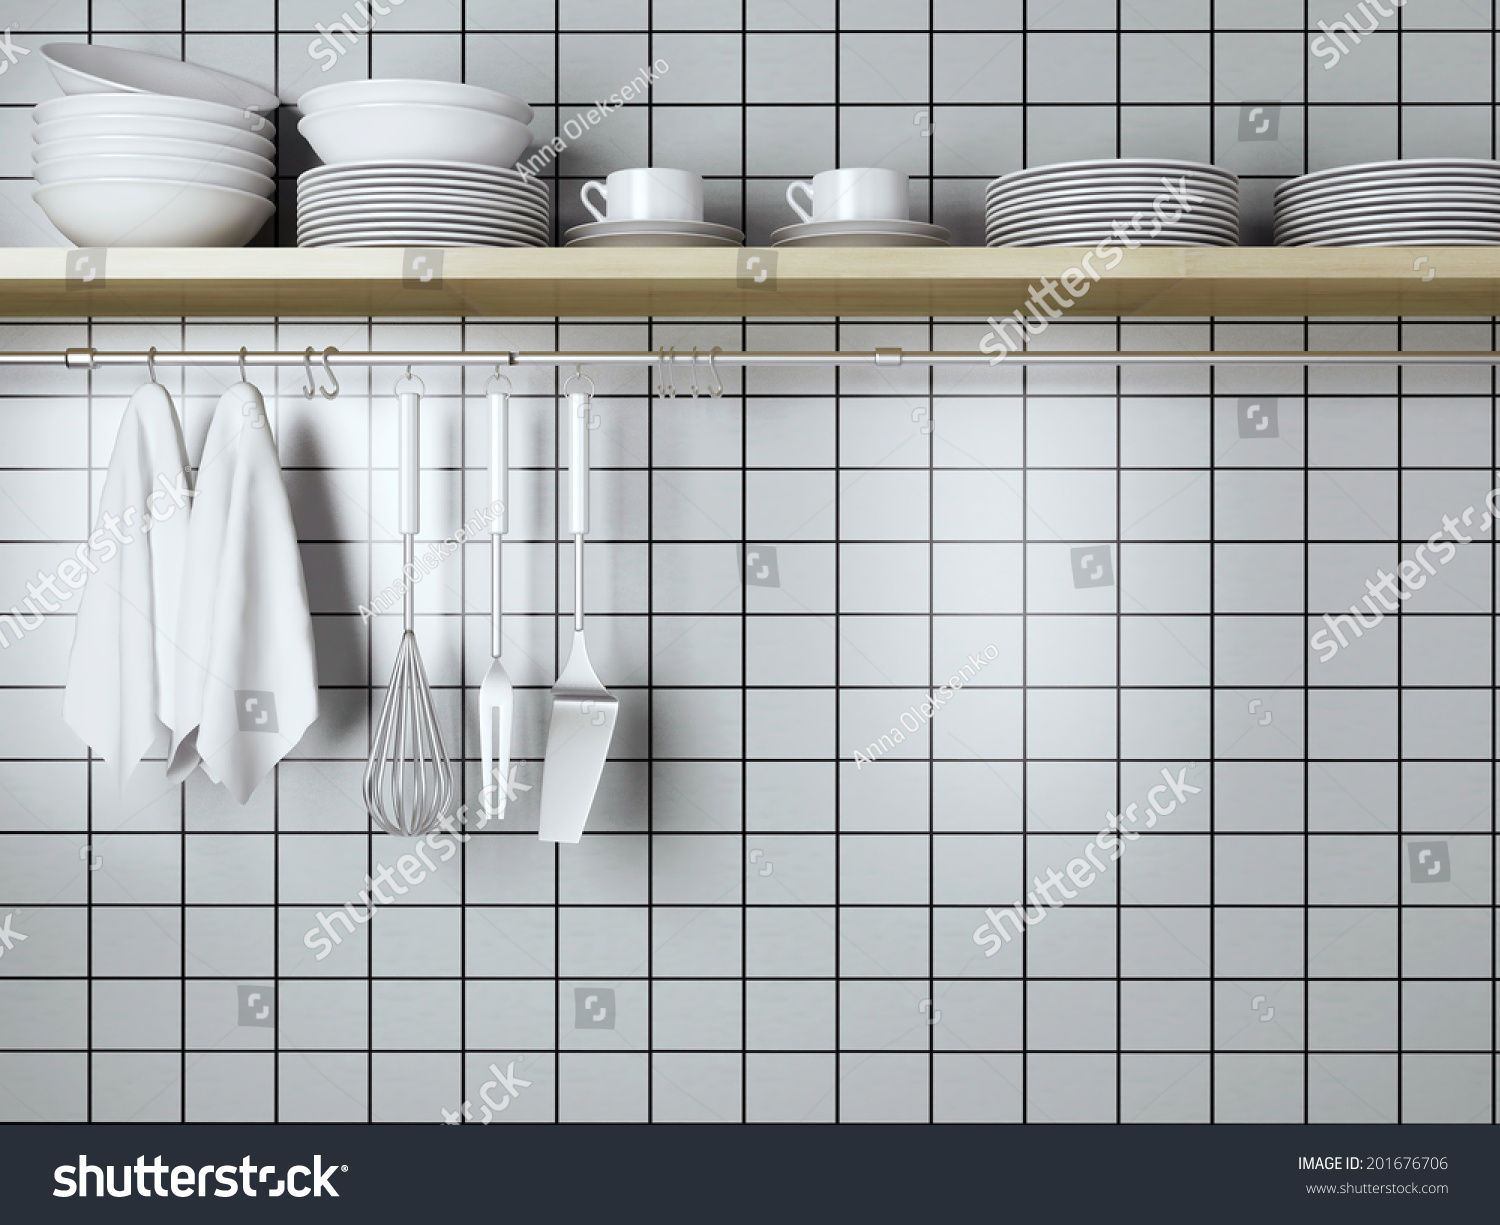 Steel Shelf For Kitchen White Plates On Wooden Shelf Kitchen Stock Illustration 201676706